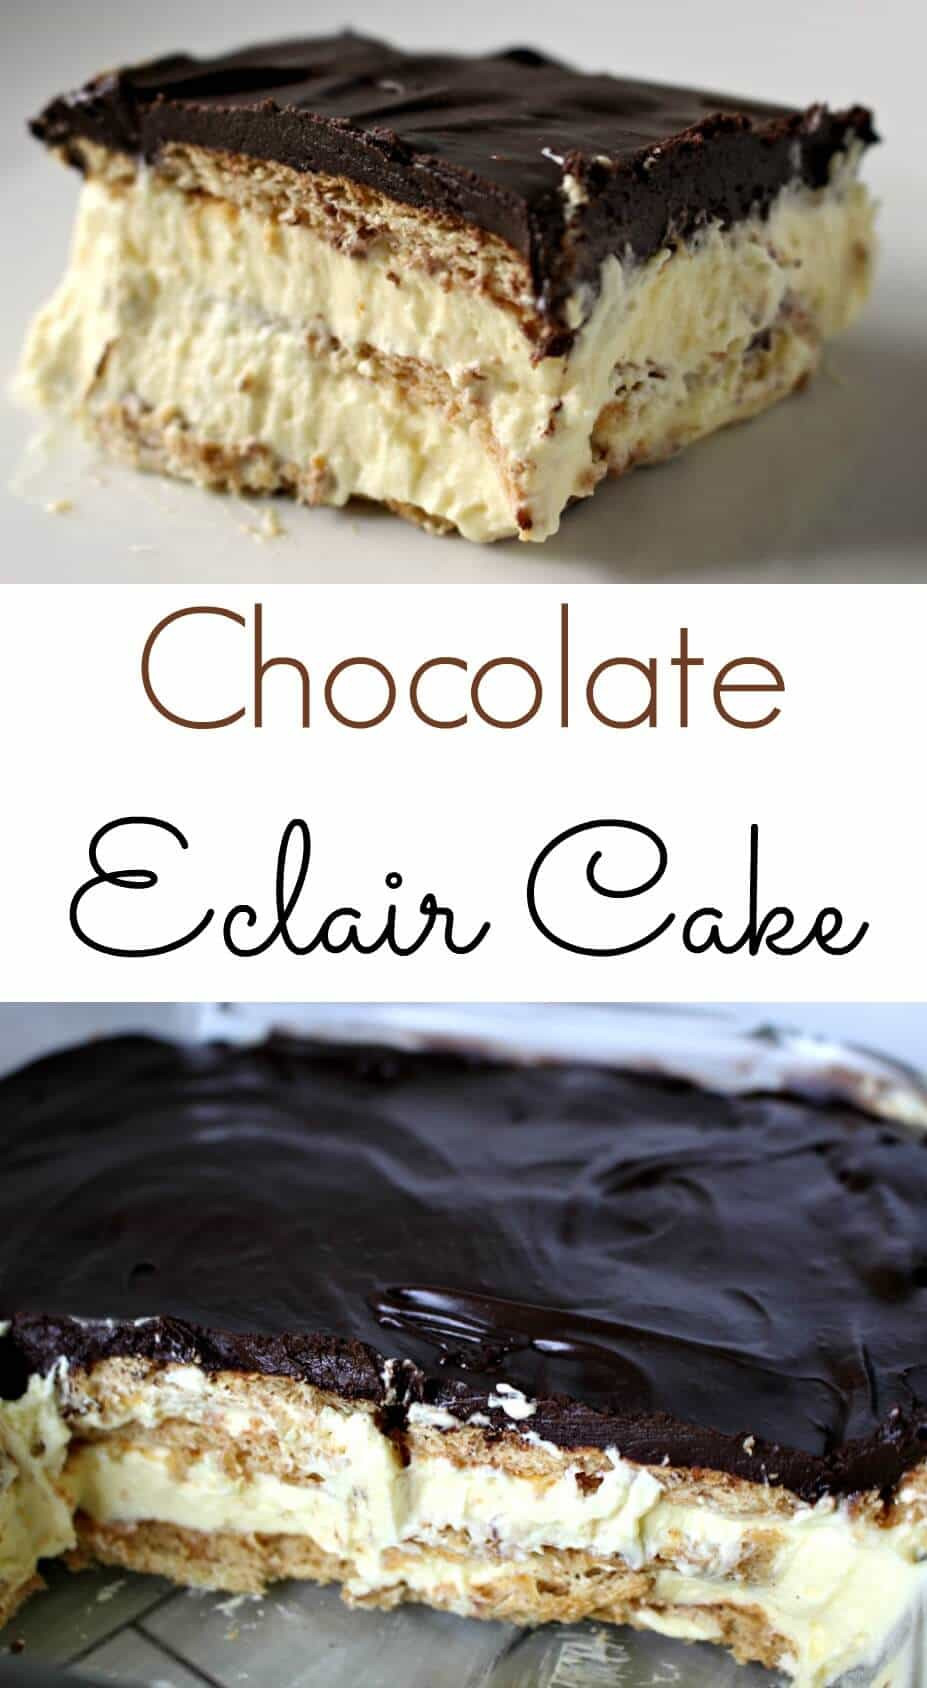 Chocolate Desserts Easy  The Easiest Eclair Cake The Perfect No Bake Dessert